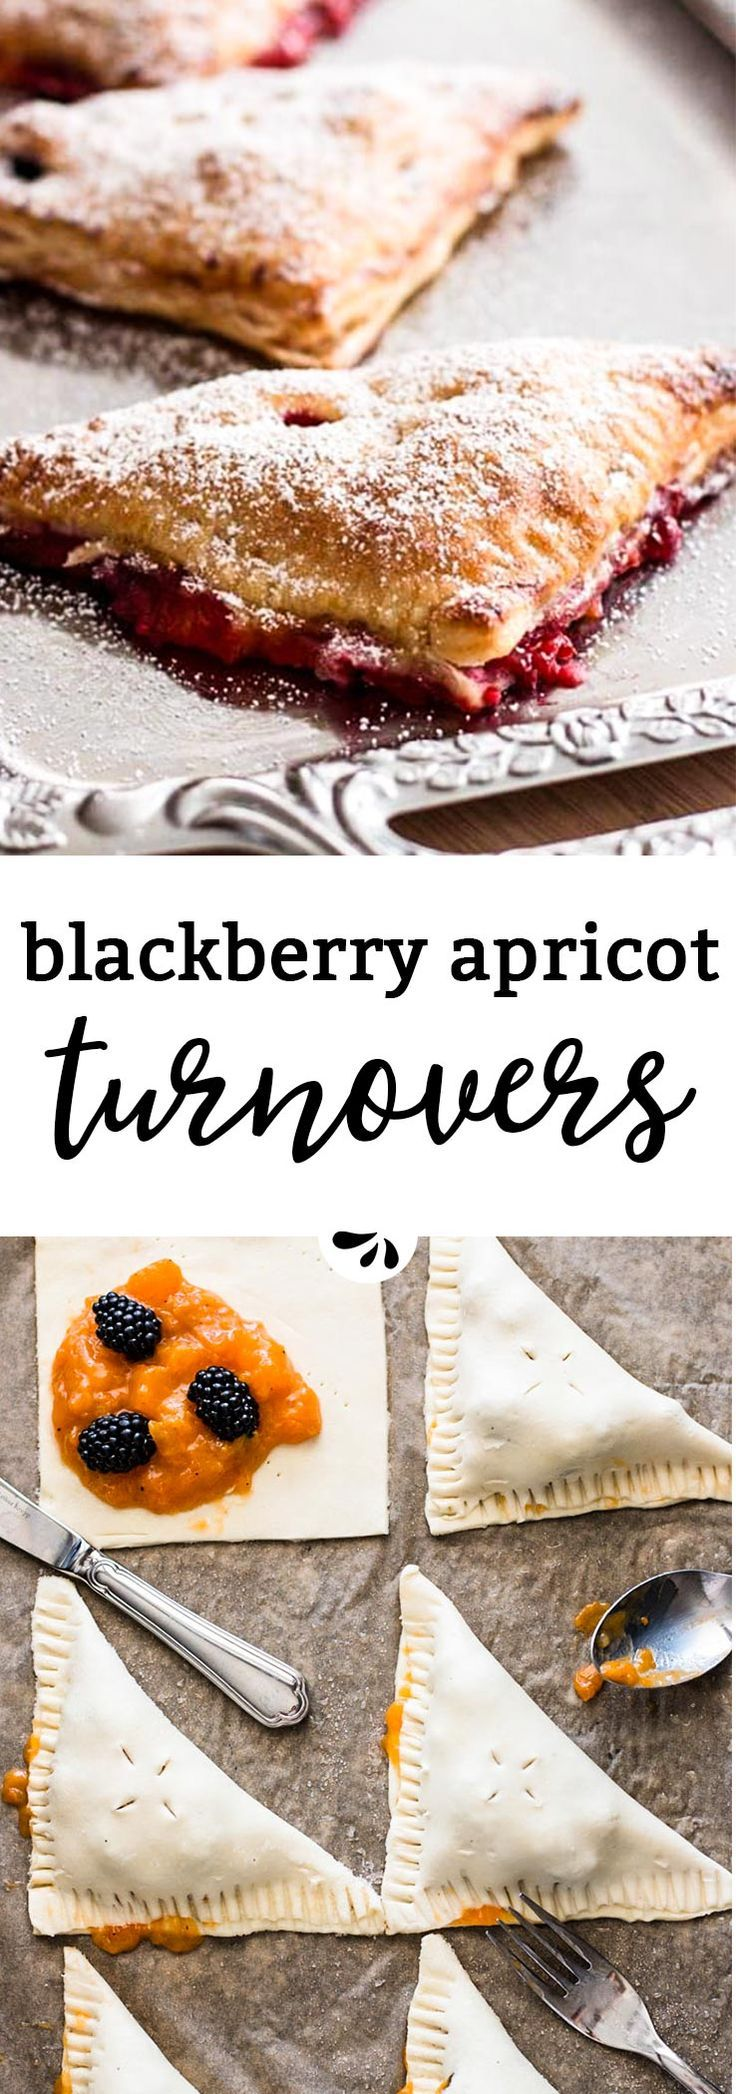 Are you looking for a scrumptious summer treat? Then this turnover recipe is for you! Made with blackberries and apricots, the from scratch filling is so good when eaten warm. The crust is easily made with store-bought puff pastry for a wonderful summer dessert. Hand pies are always everyone's favorites!